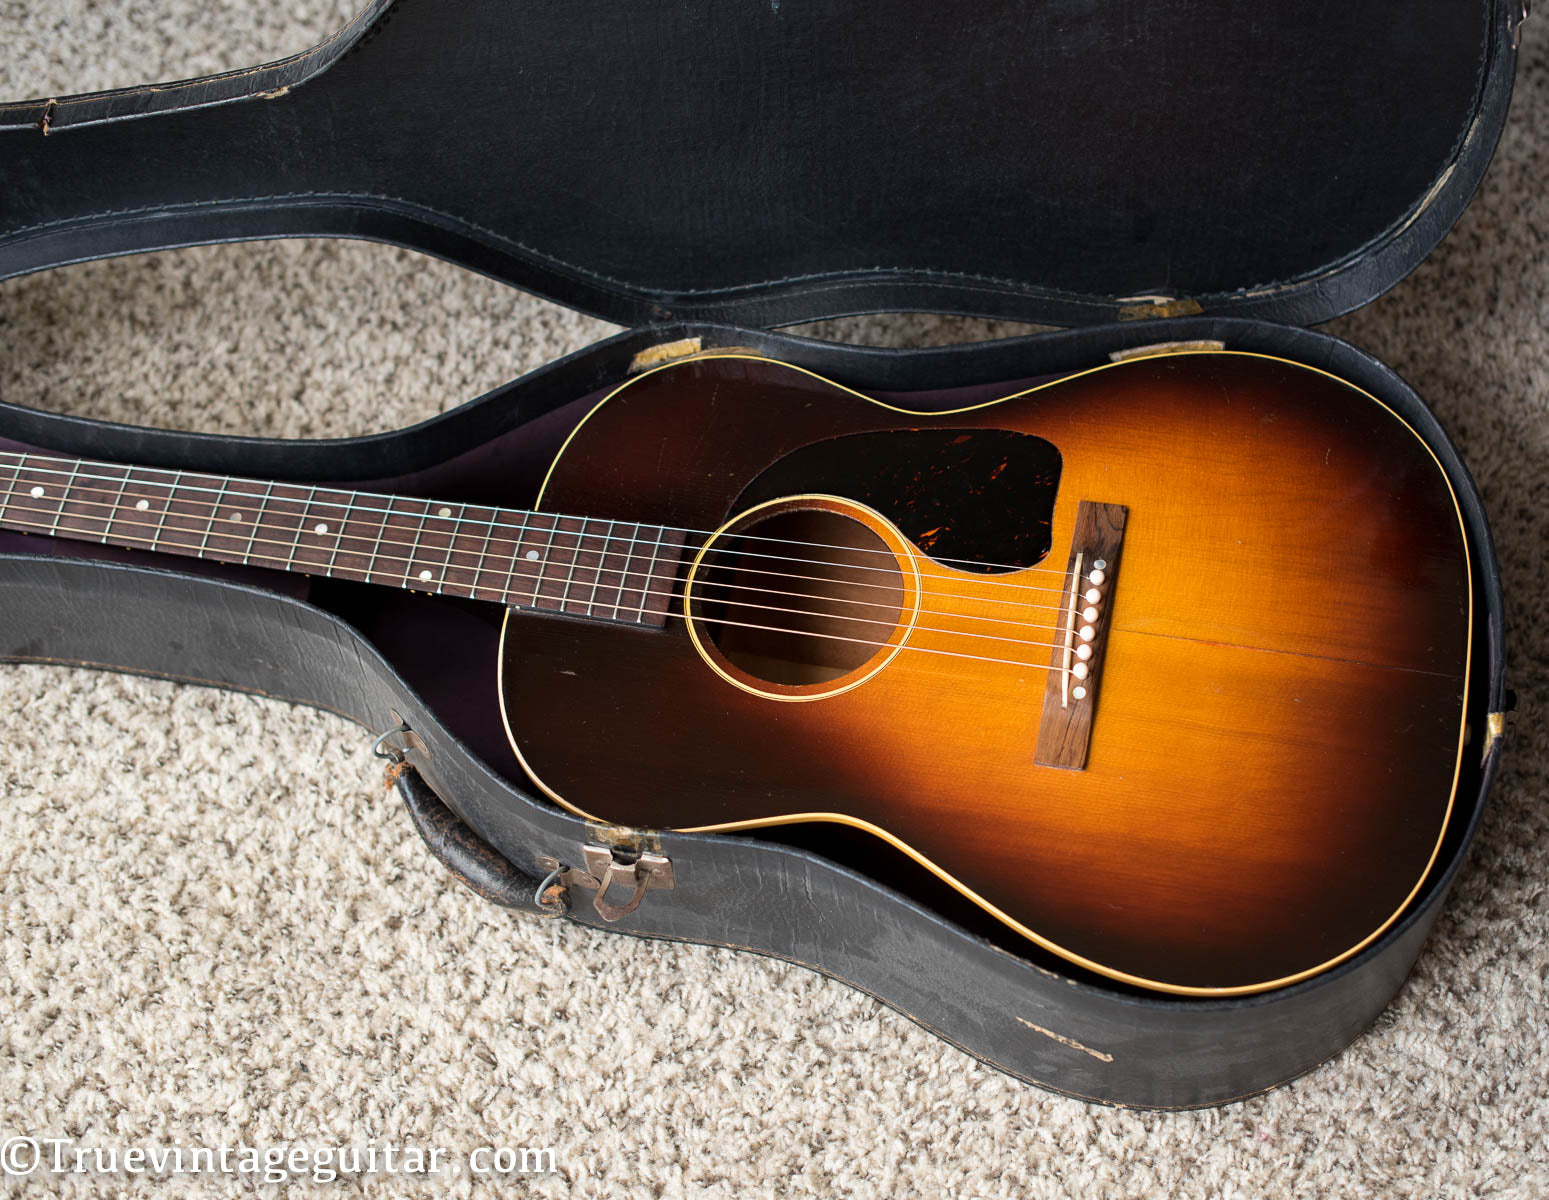 Gibson small body acoustic guitar 1946 LG-2